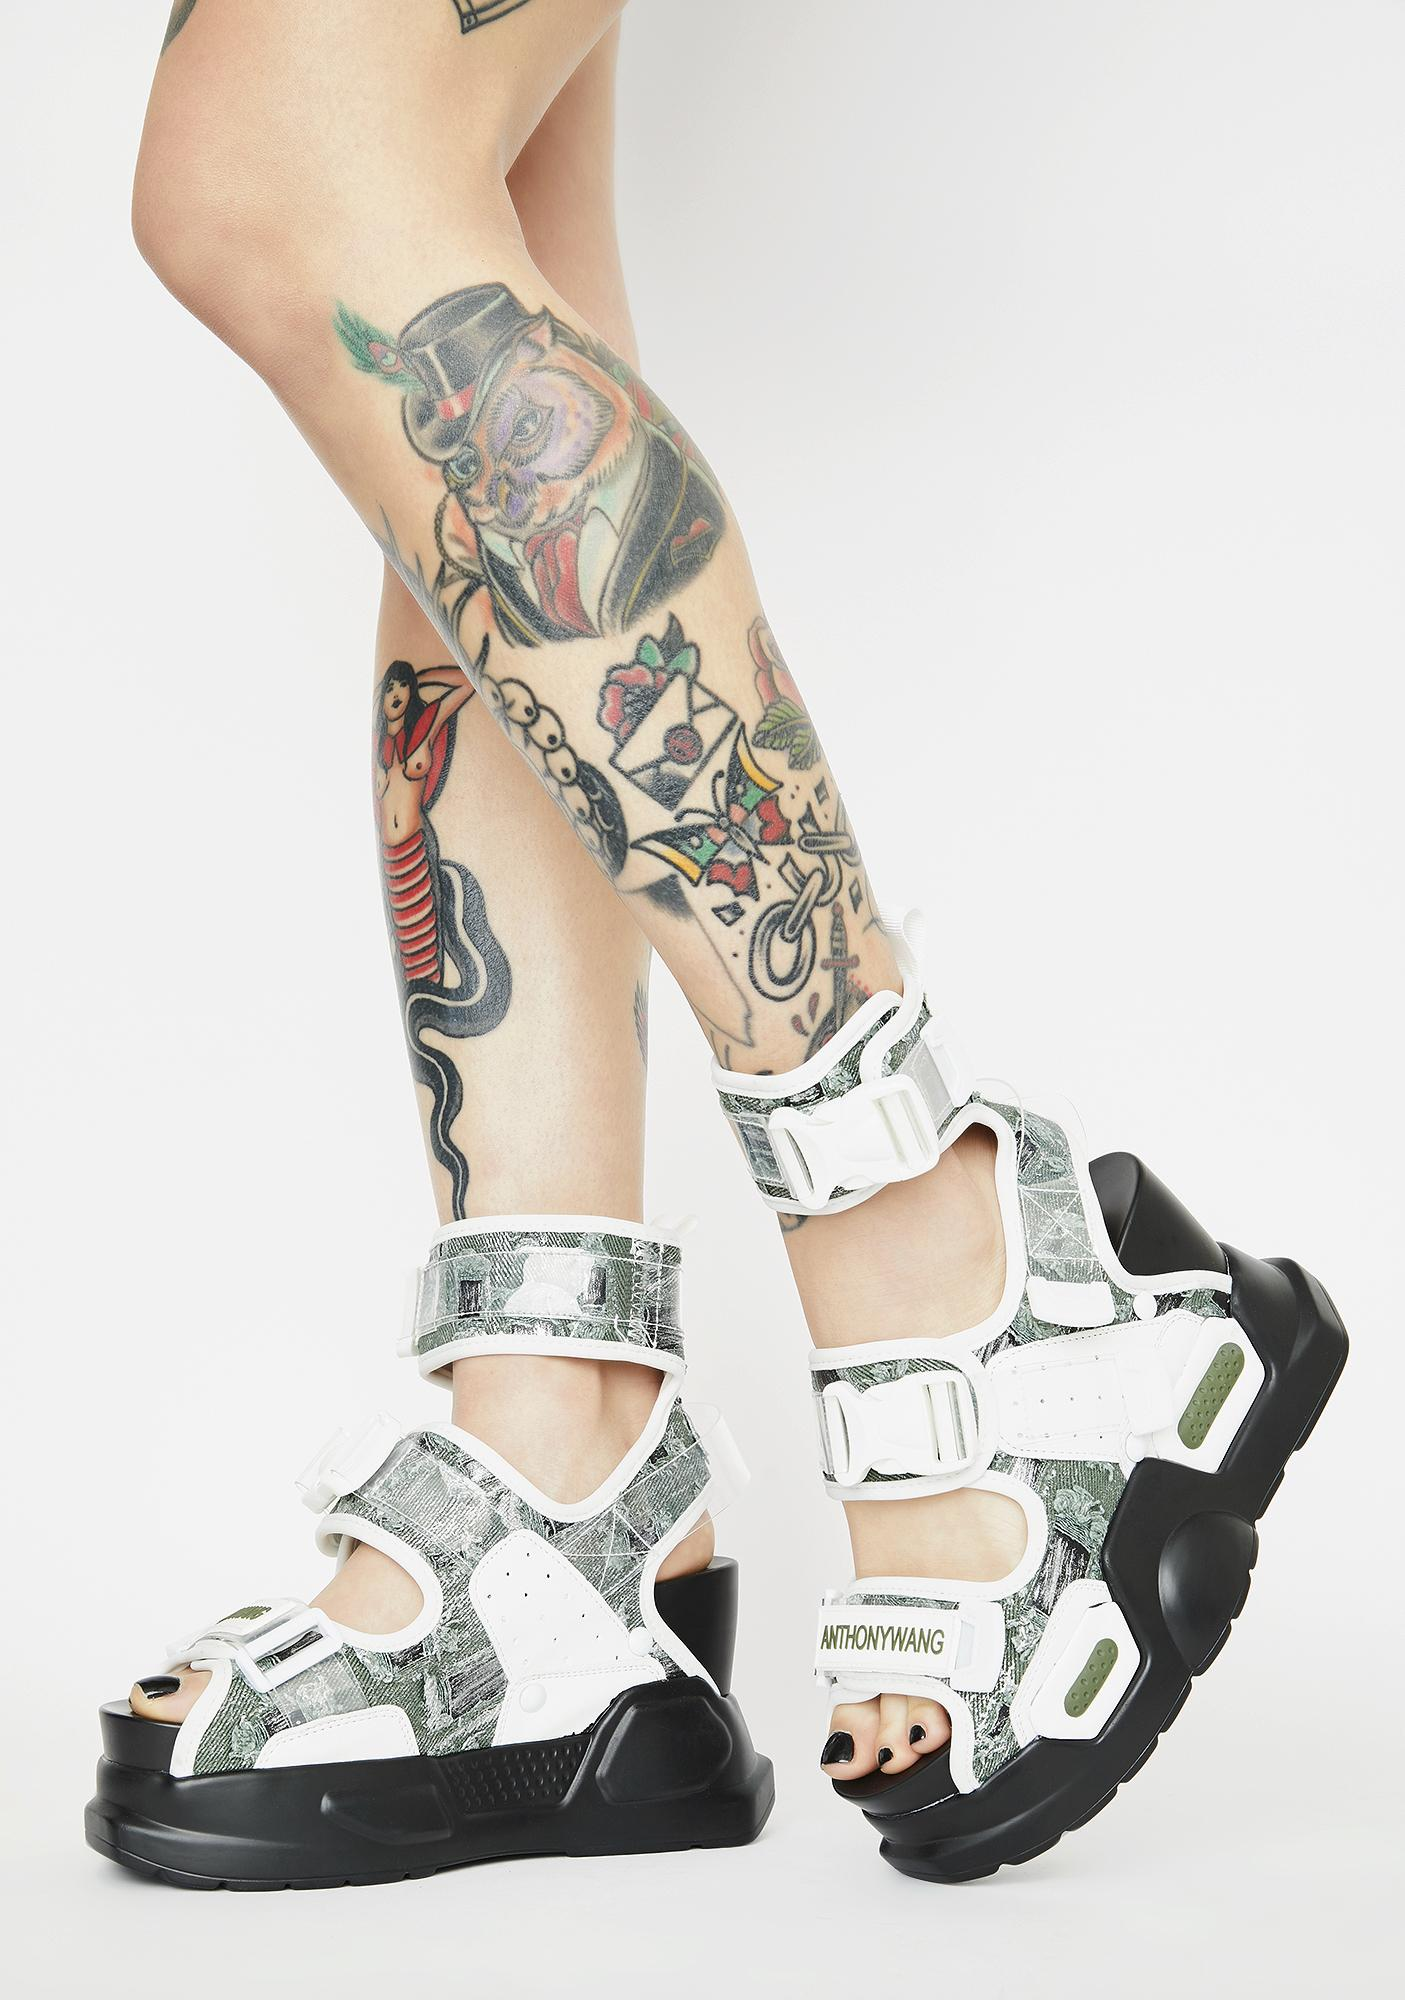 Anthony Wang Mulberry Platform Sandals